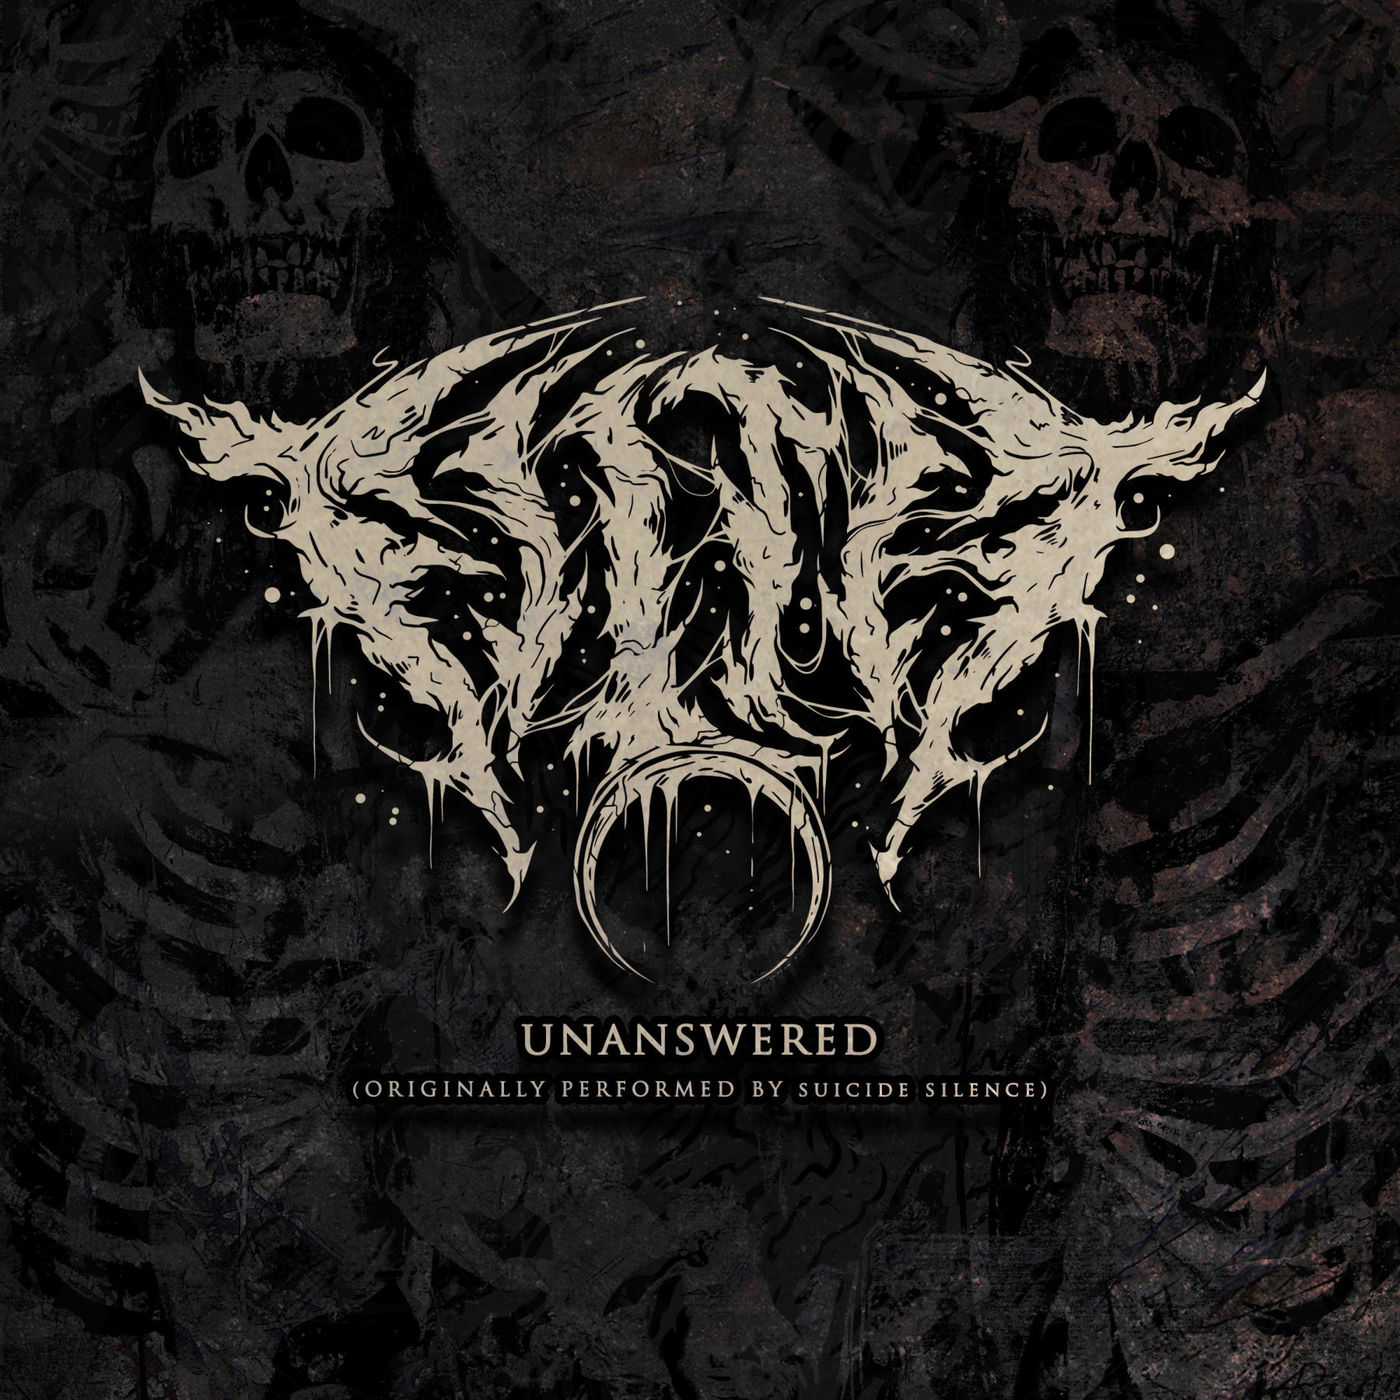 Filth - Unanswered (Suicide Silence cover) [single] (2020)